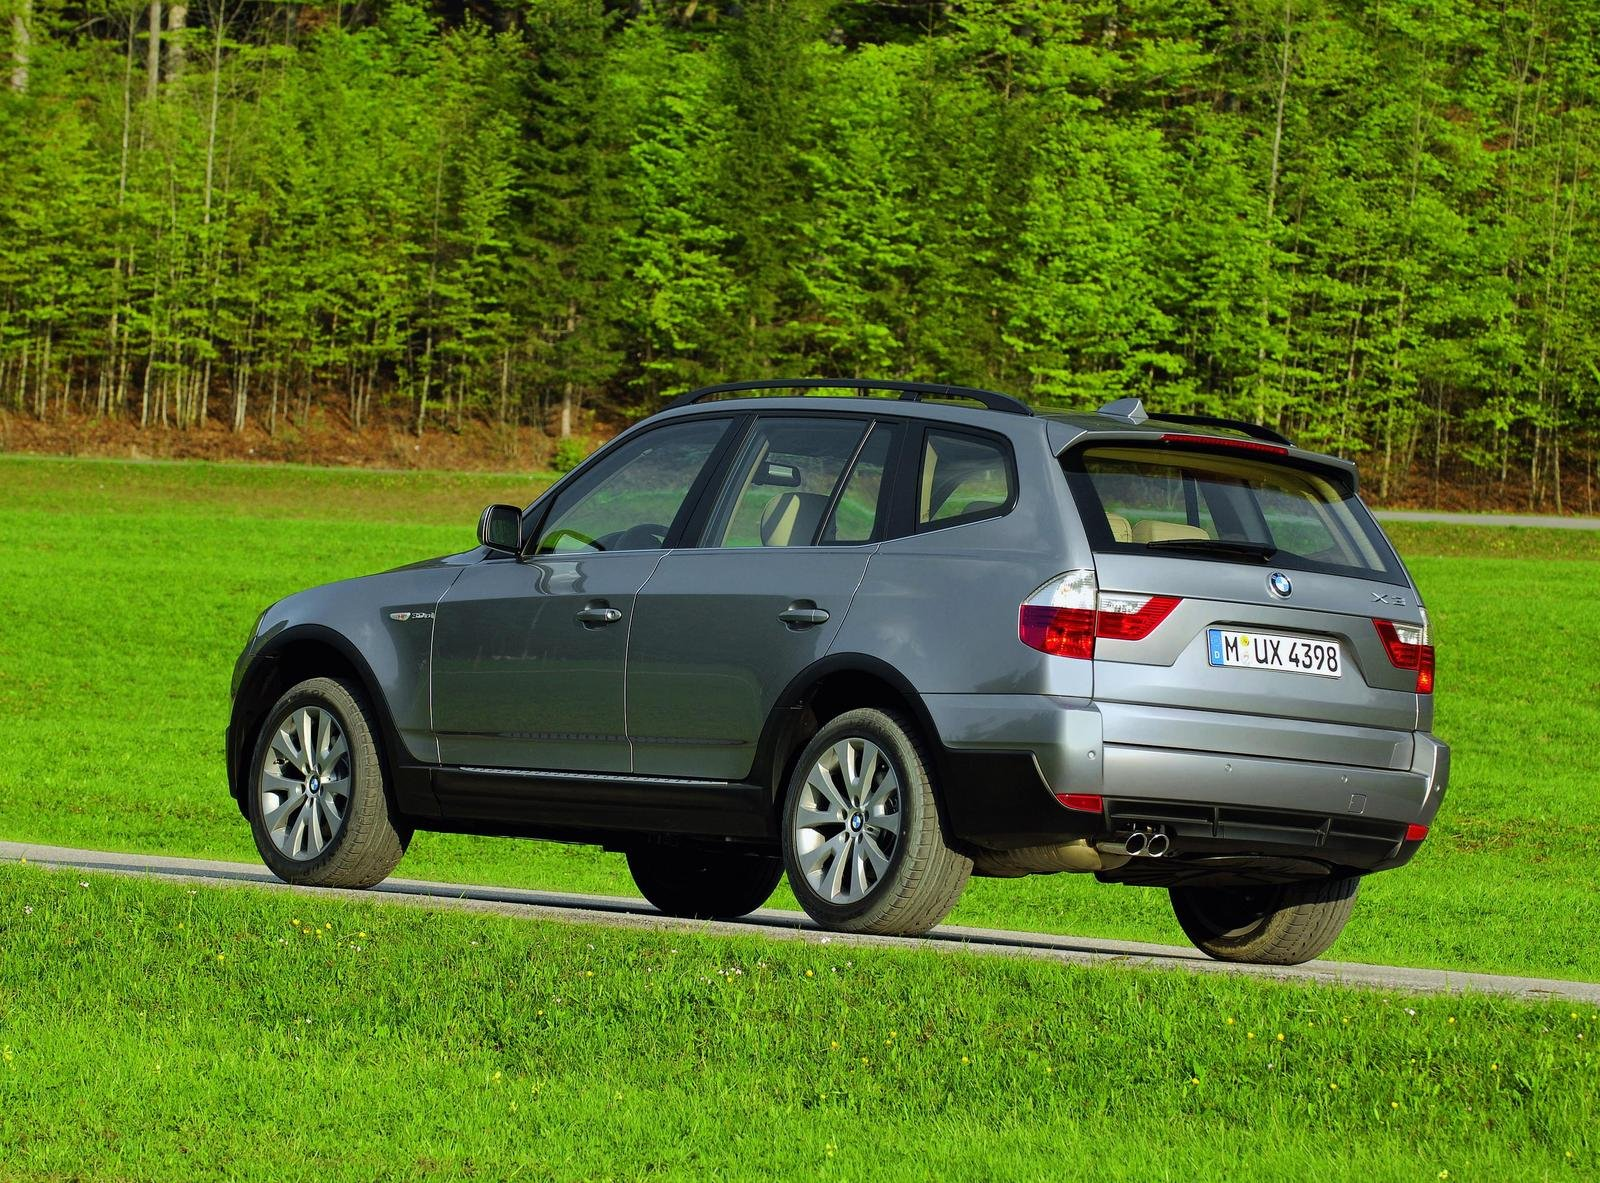 2010 bmw x1 picture 160117 car news top speed. Black Bedroom Furniture Sets. Home Design Ideas